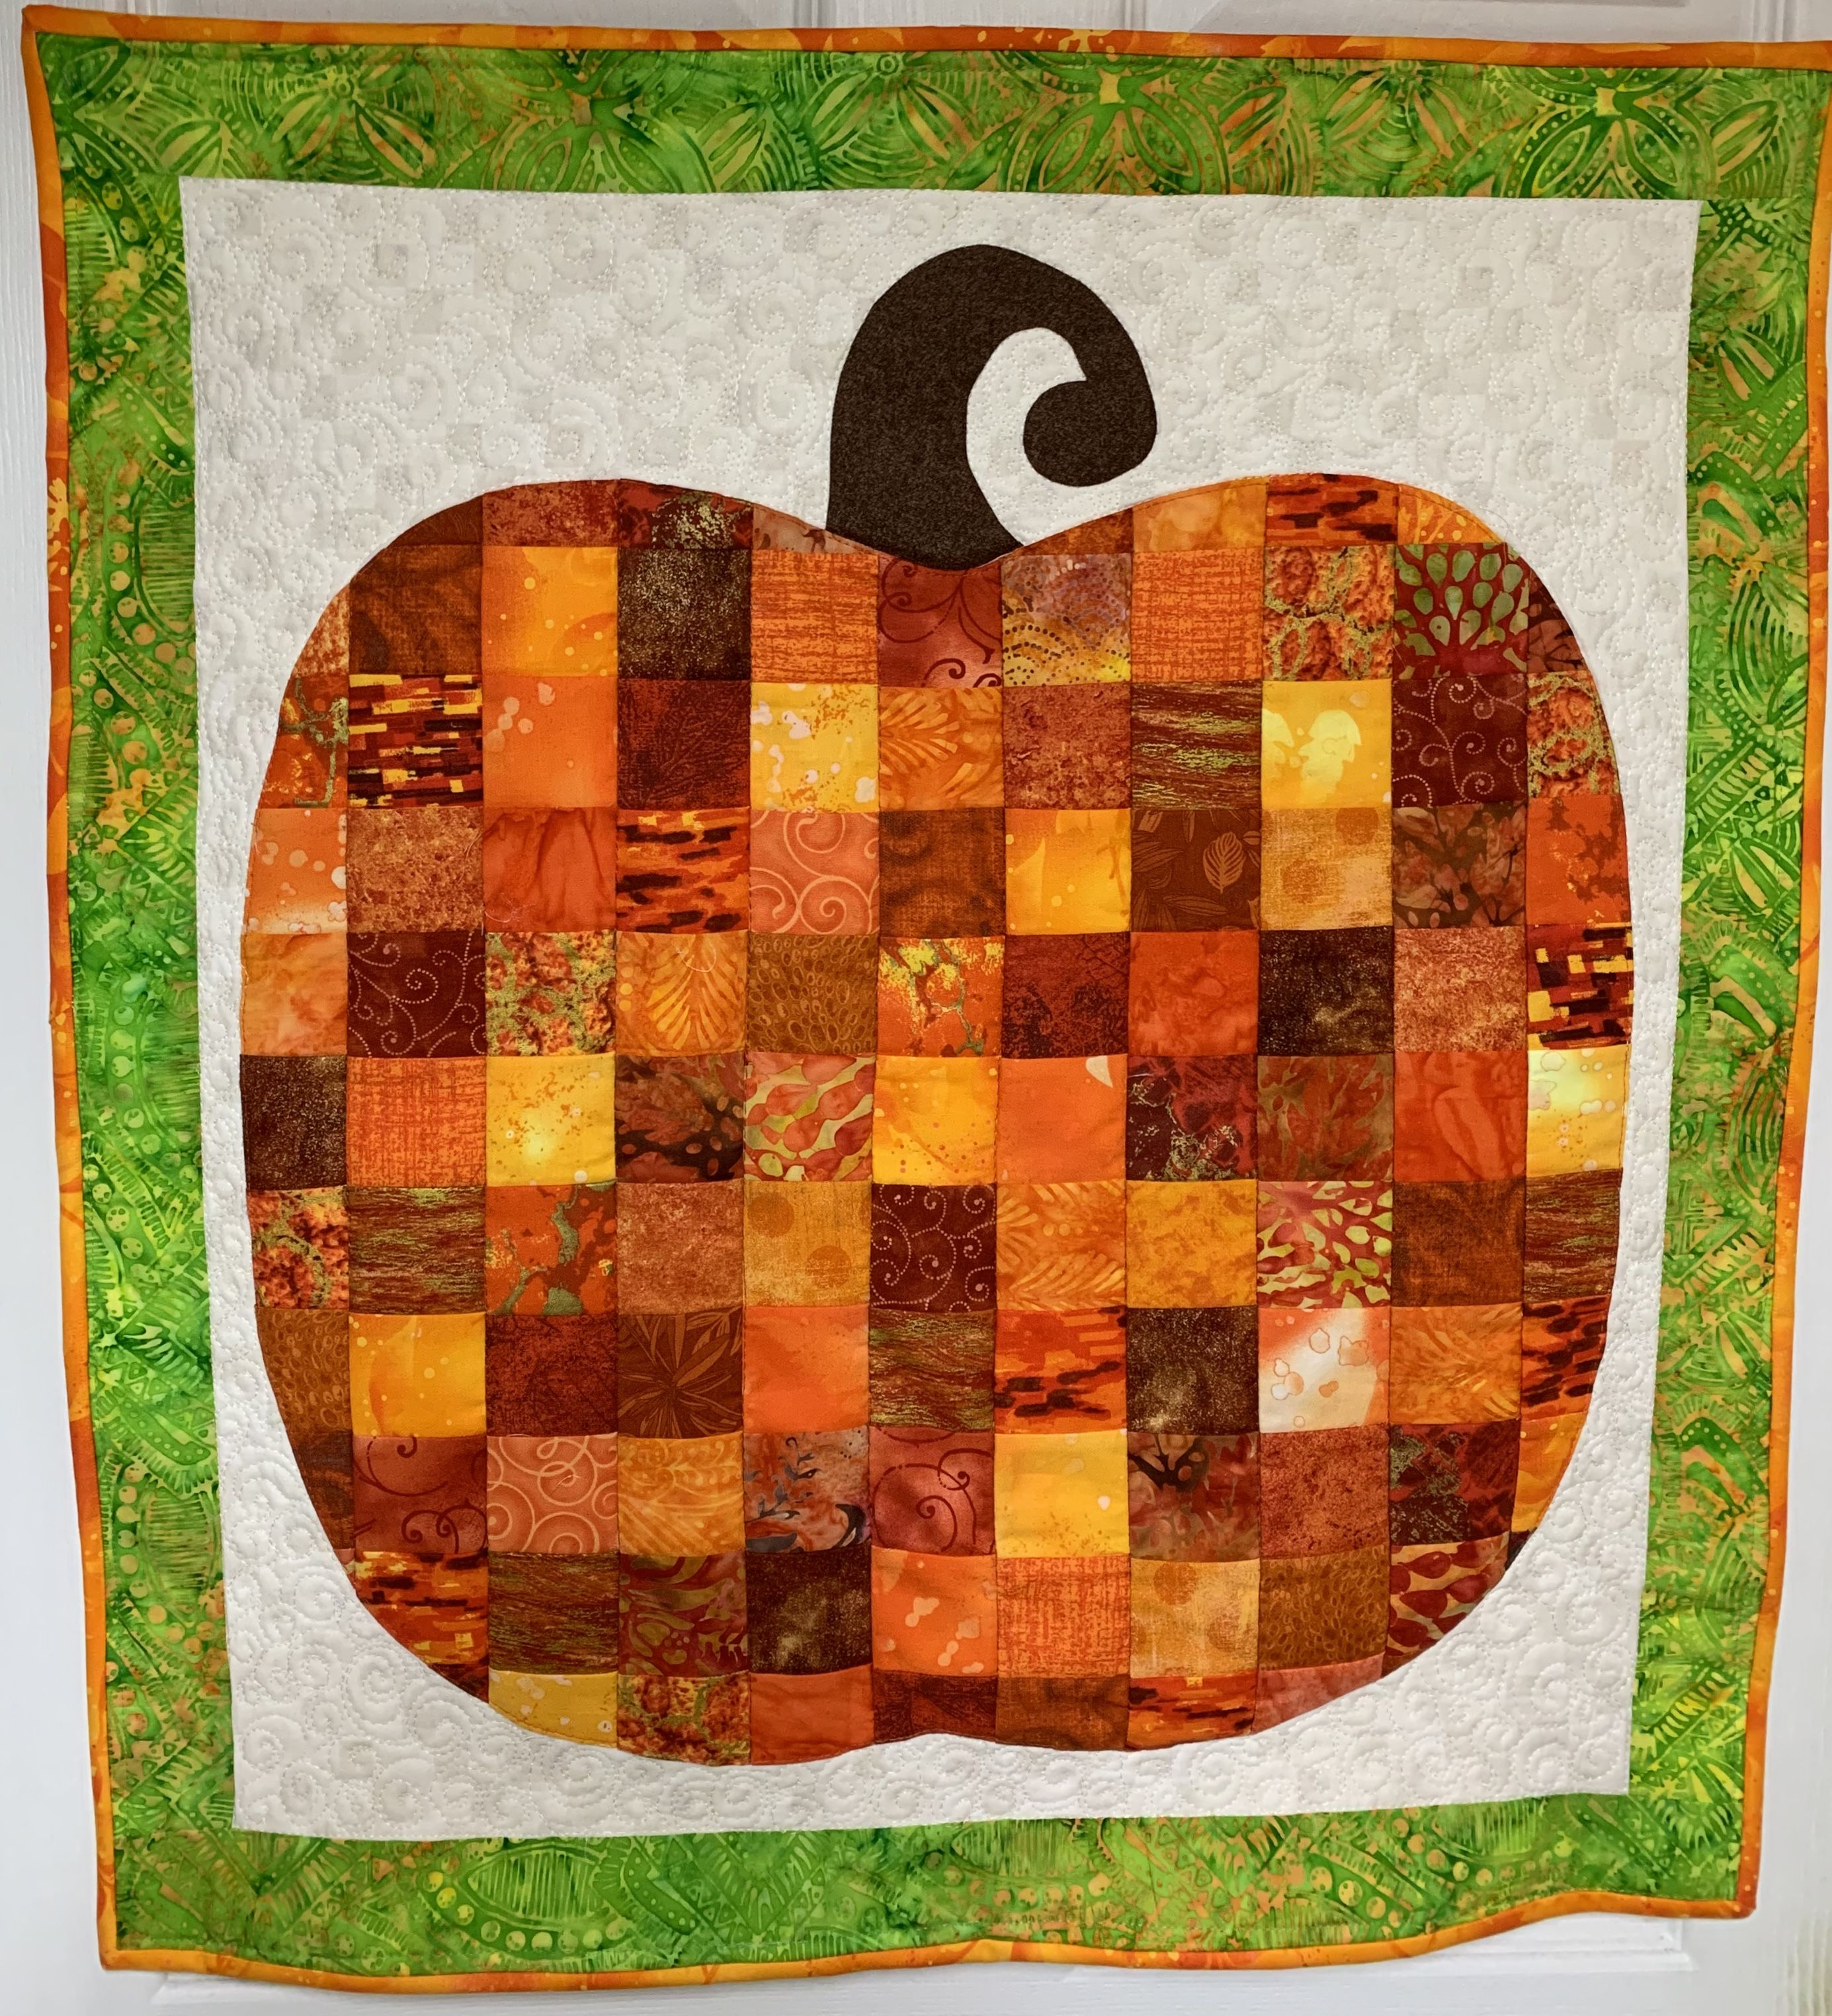 Autumn Pumpkin With 2 1 2 Inch Squares 31x31 2019 Quilted Wall Hangings Fall Pumpkins Wall Hanging